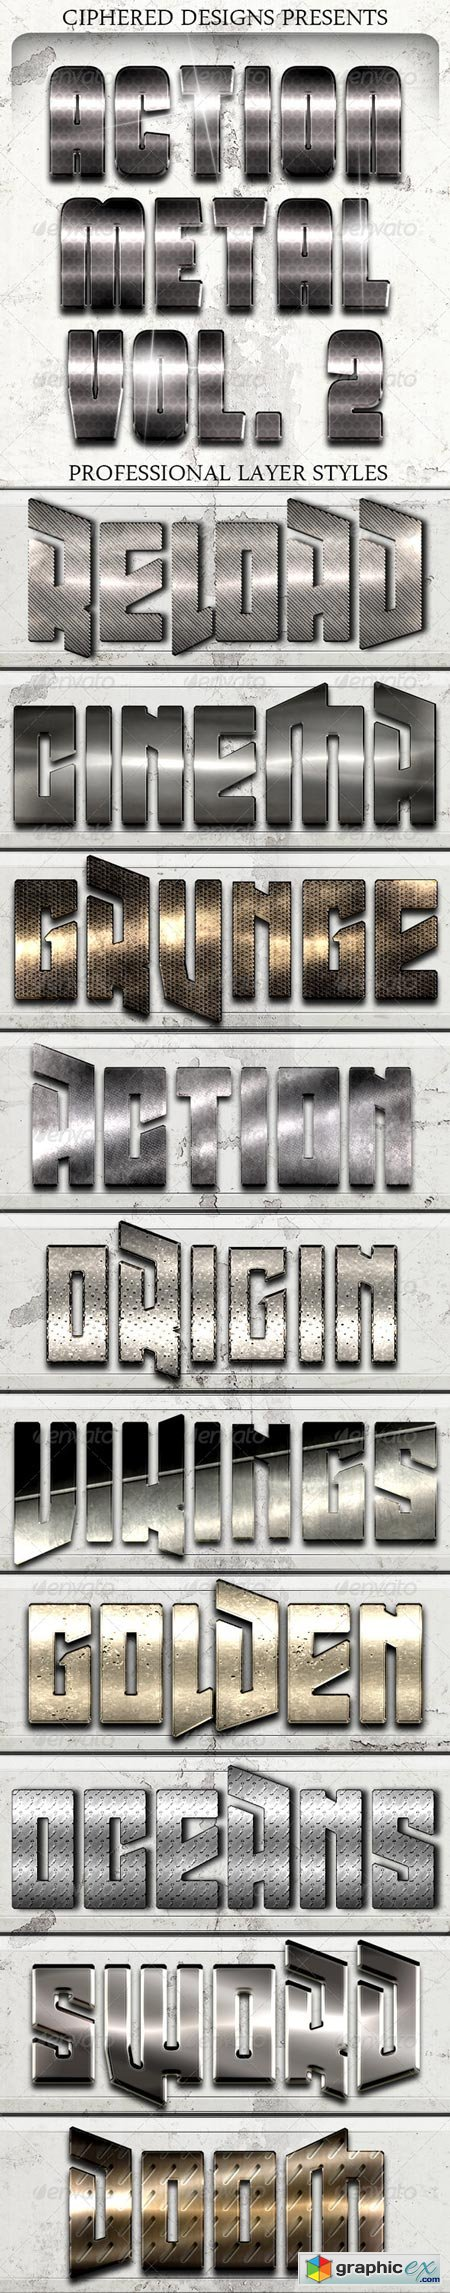 Action Metal 02 - Pro Text Effects 8547198